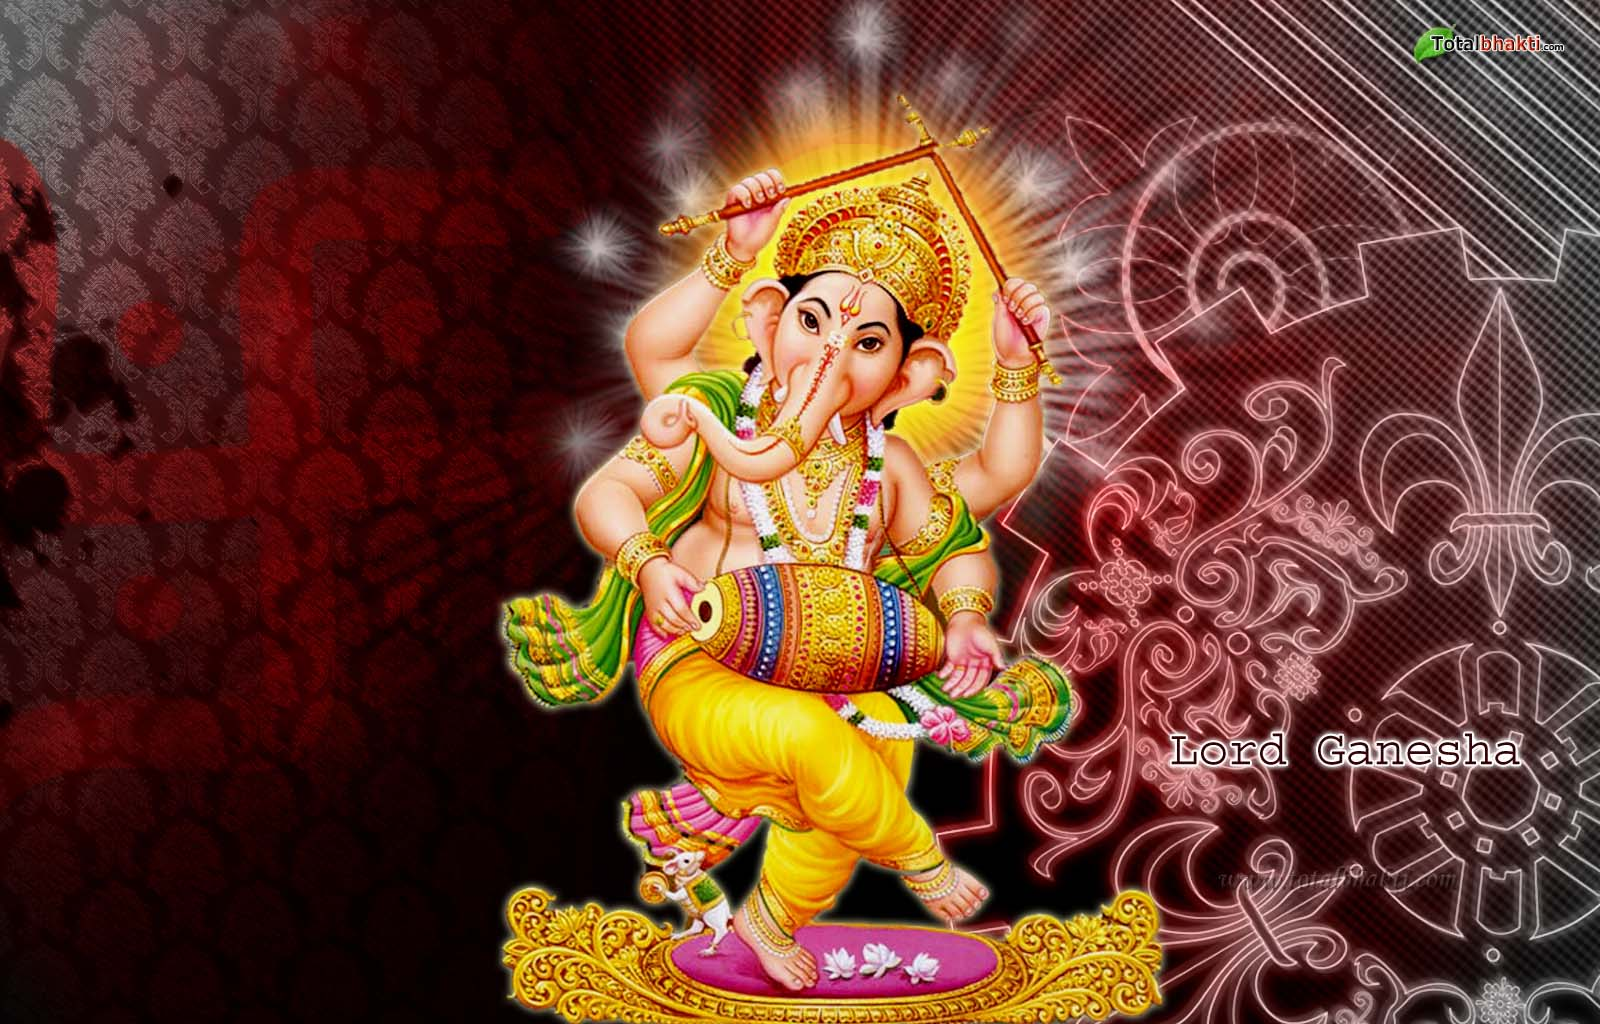 lord ganesha wallpaper computer background - photo #1